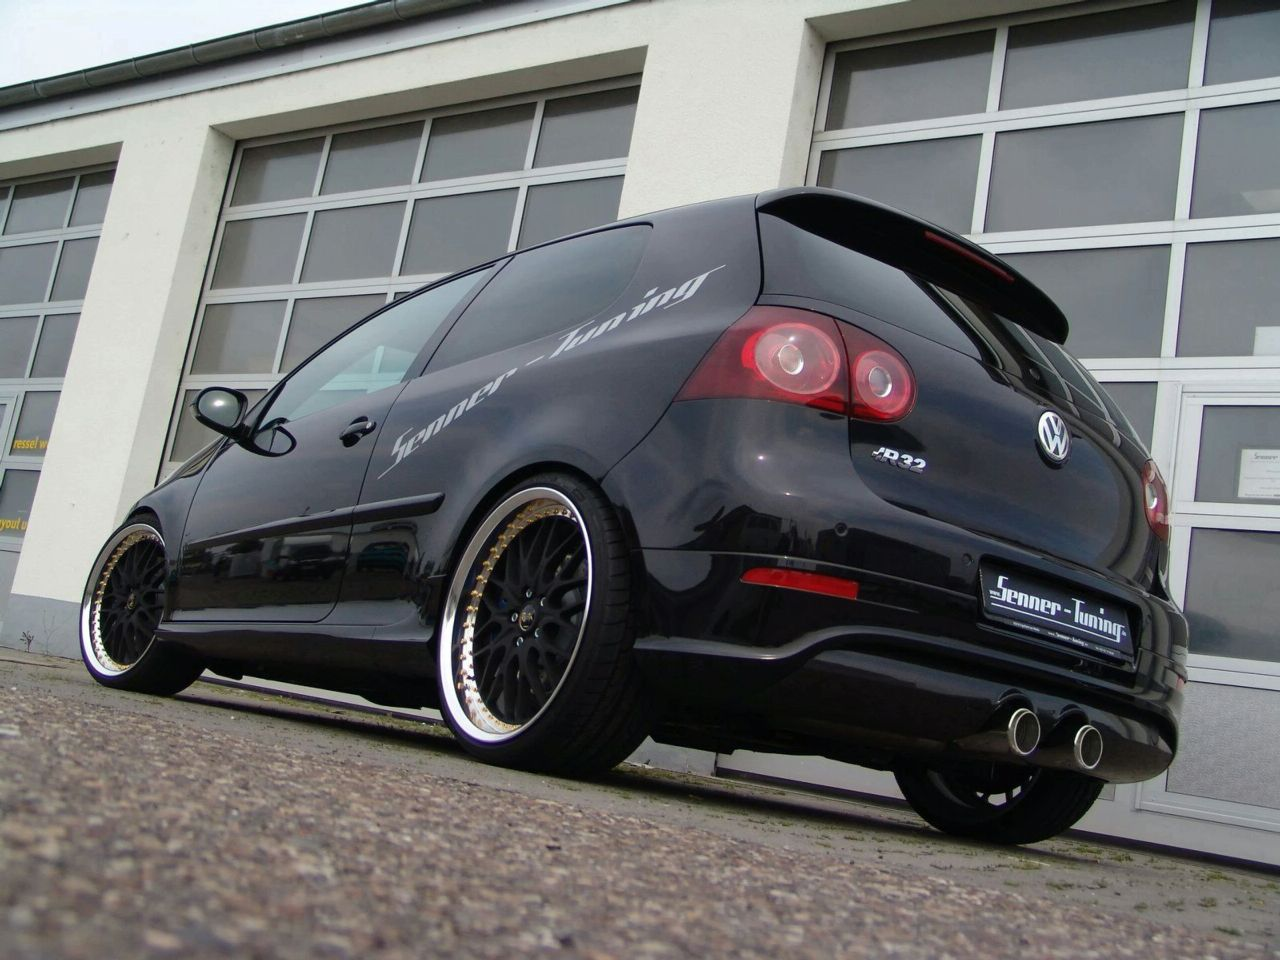 Vw Golf V R32 By Senner Tuning Car Tuning Styling